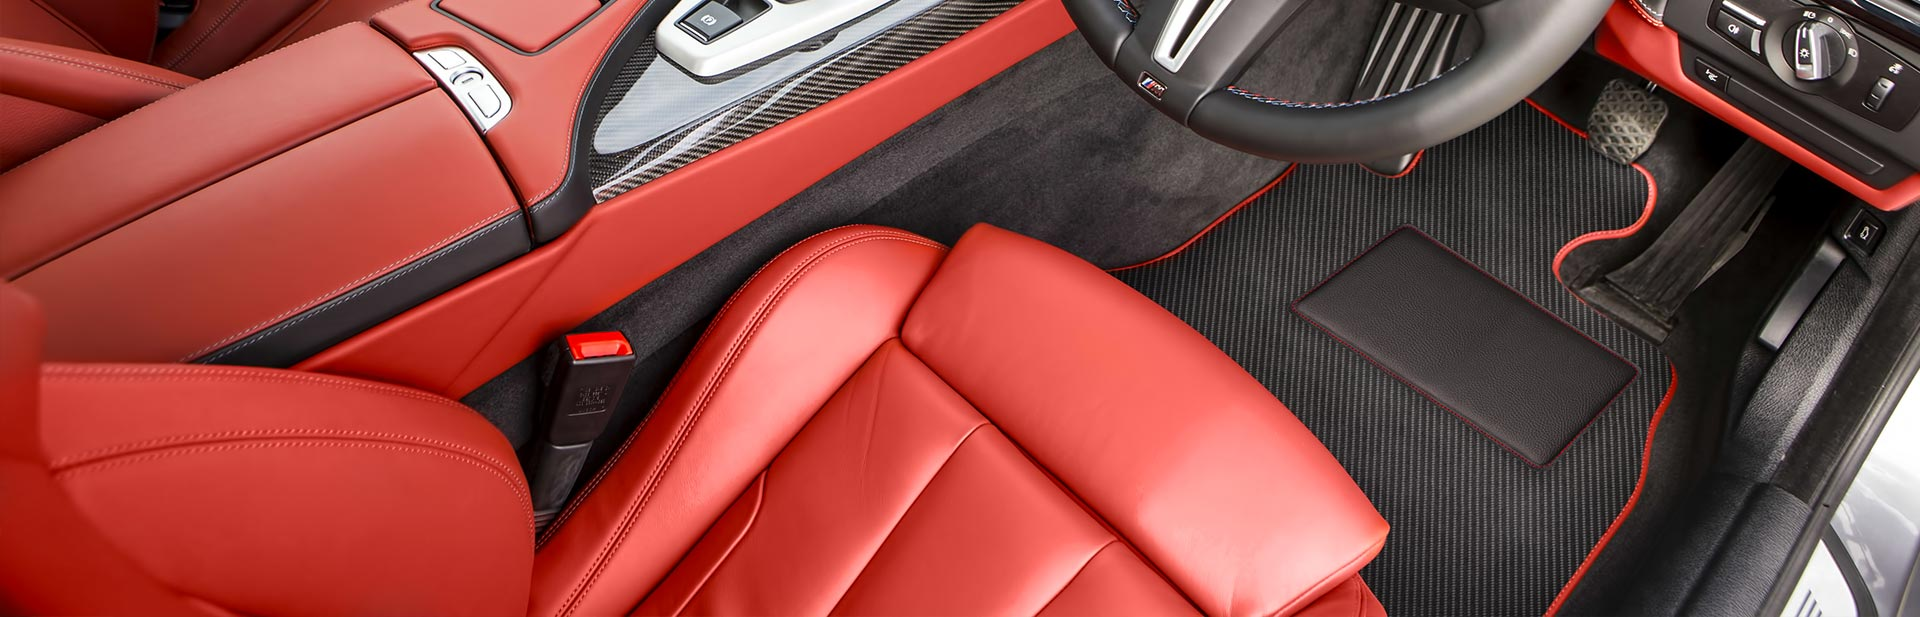 Car Floor Mats for Maserati